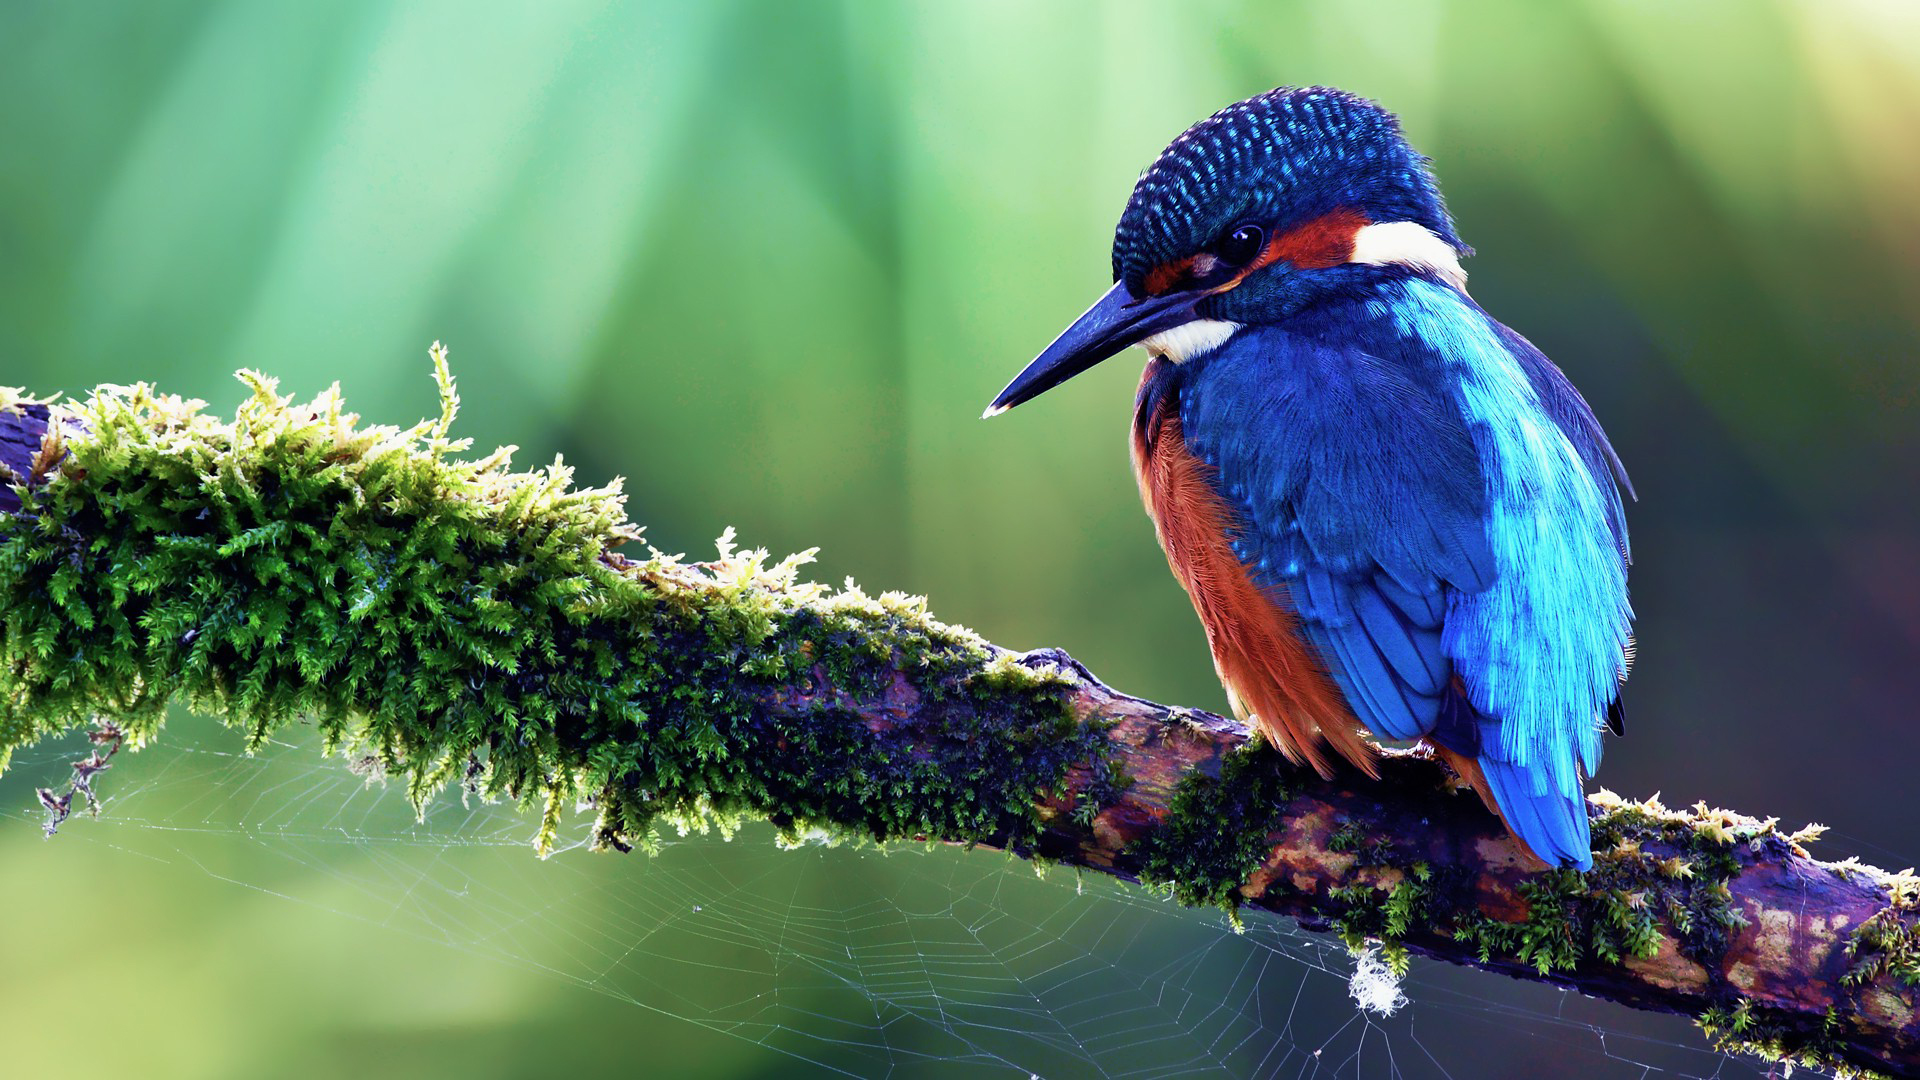 Colorful Bird Wallpapers